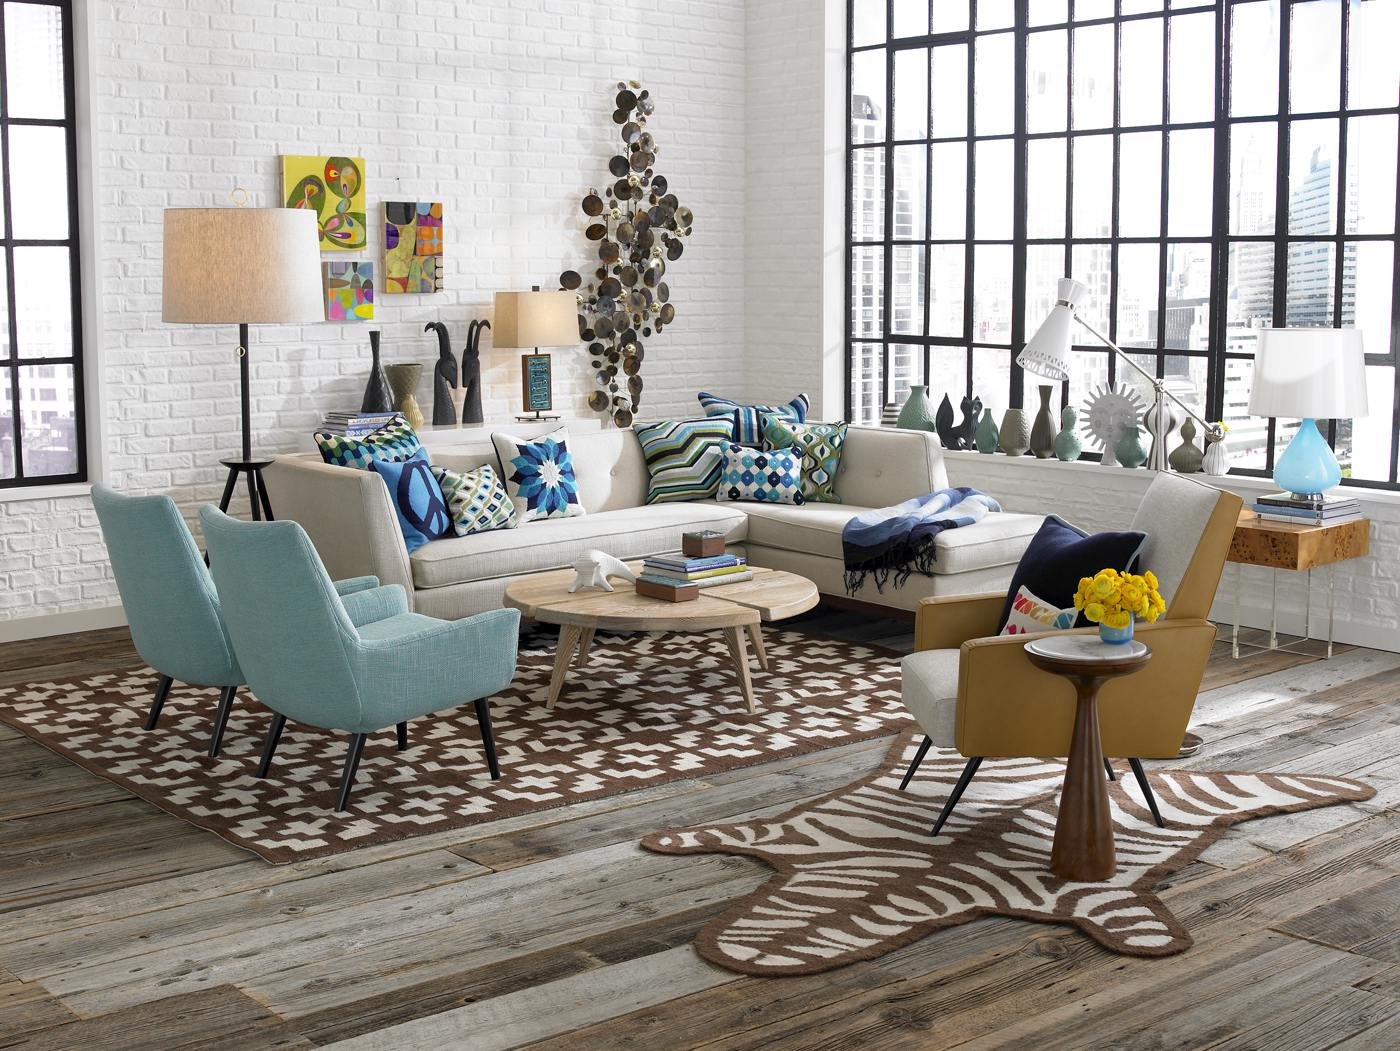 NYC Interior Designers, A List Of The Top 10  nyc interior designers NYC Interior Designers, A List Of The Top 10 jonathan adler